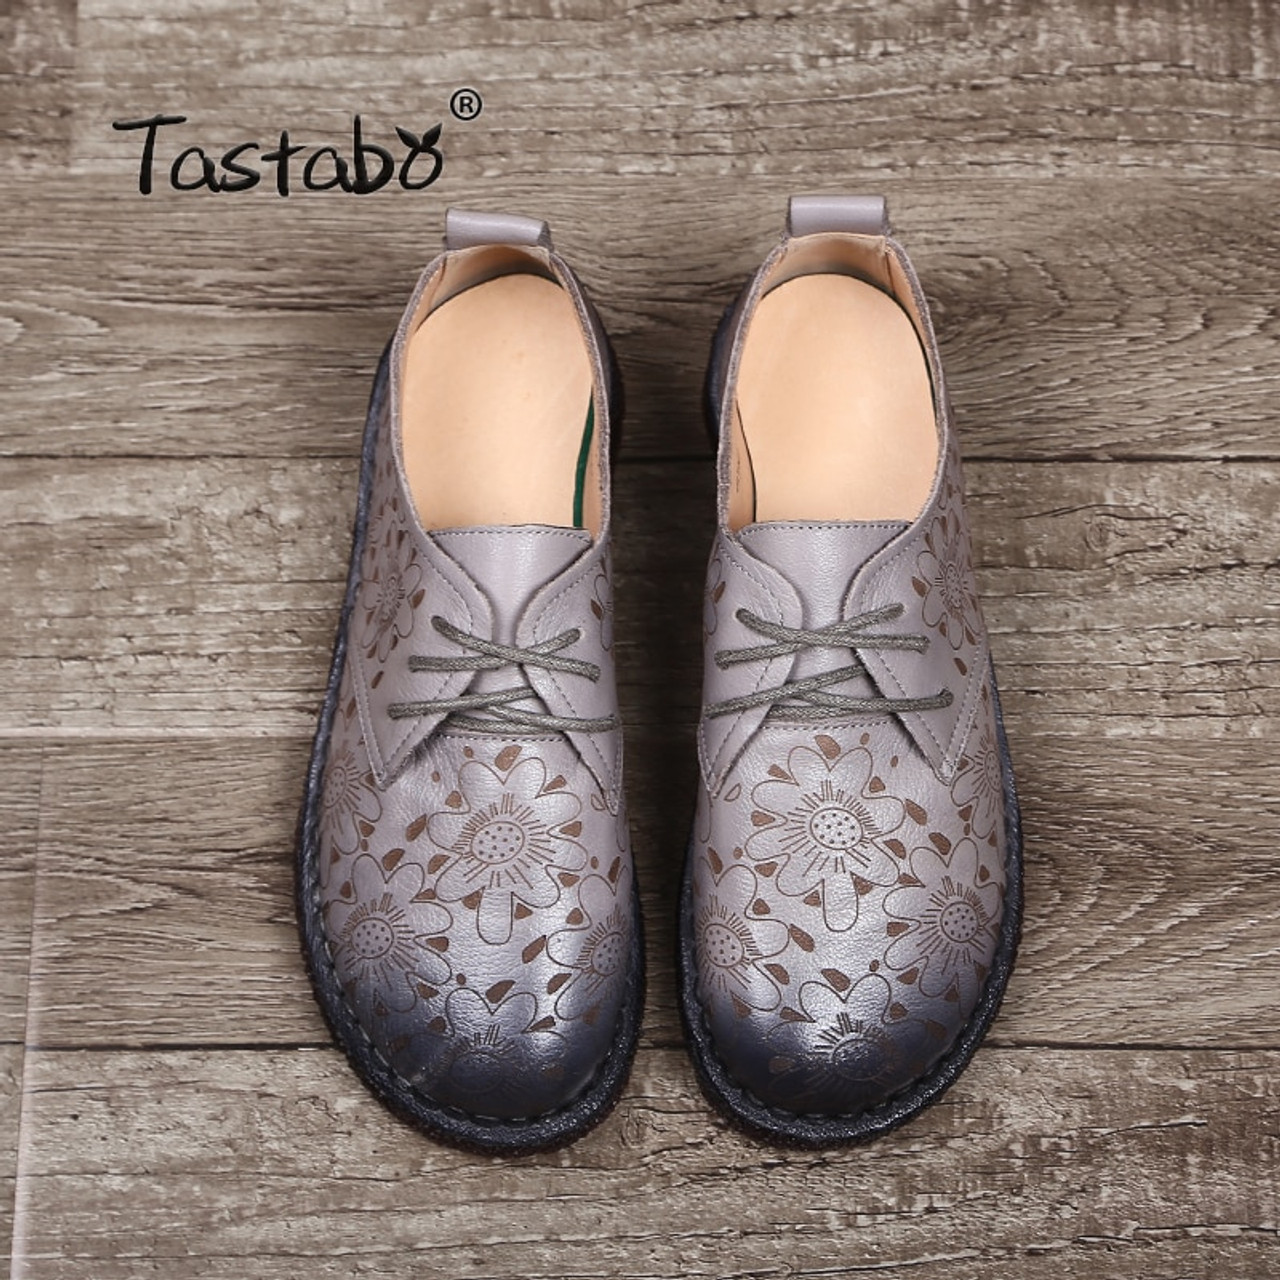 8a0856a44f ... Tastabo Print Flower Flat Shoe Pregnant Women Shoe Mother Driving Shoe  Female Moccasins Women Flats Hand ...